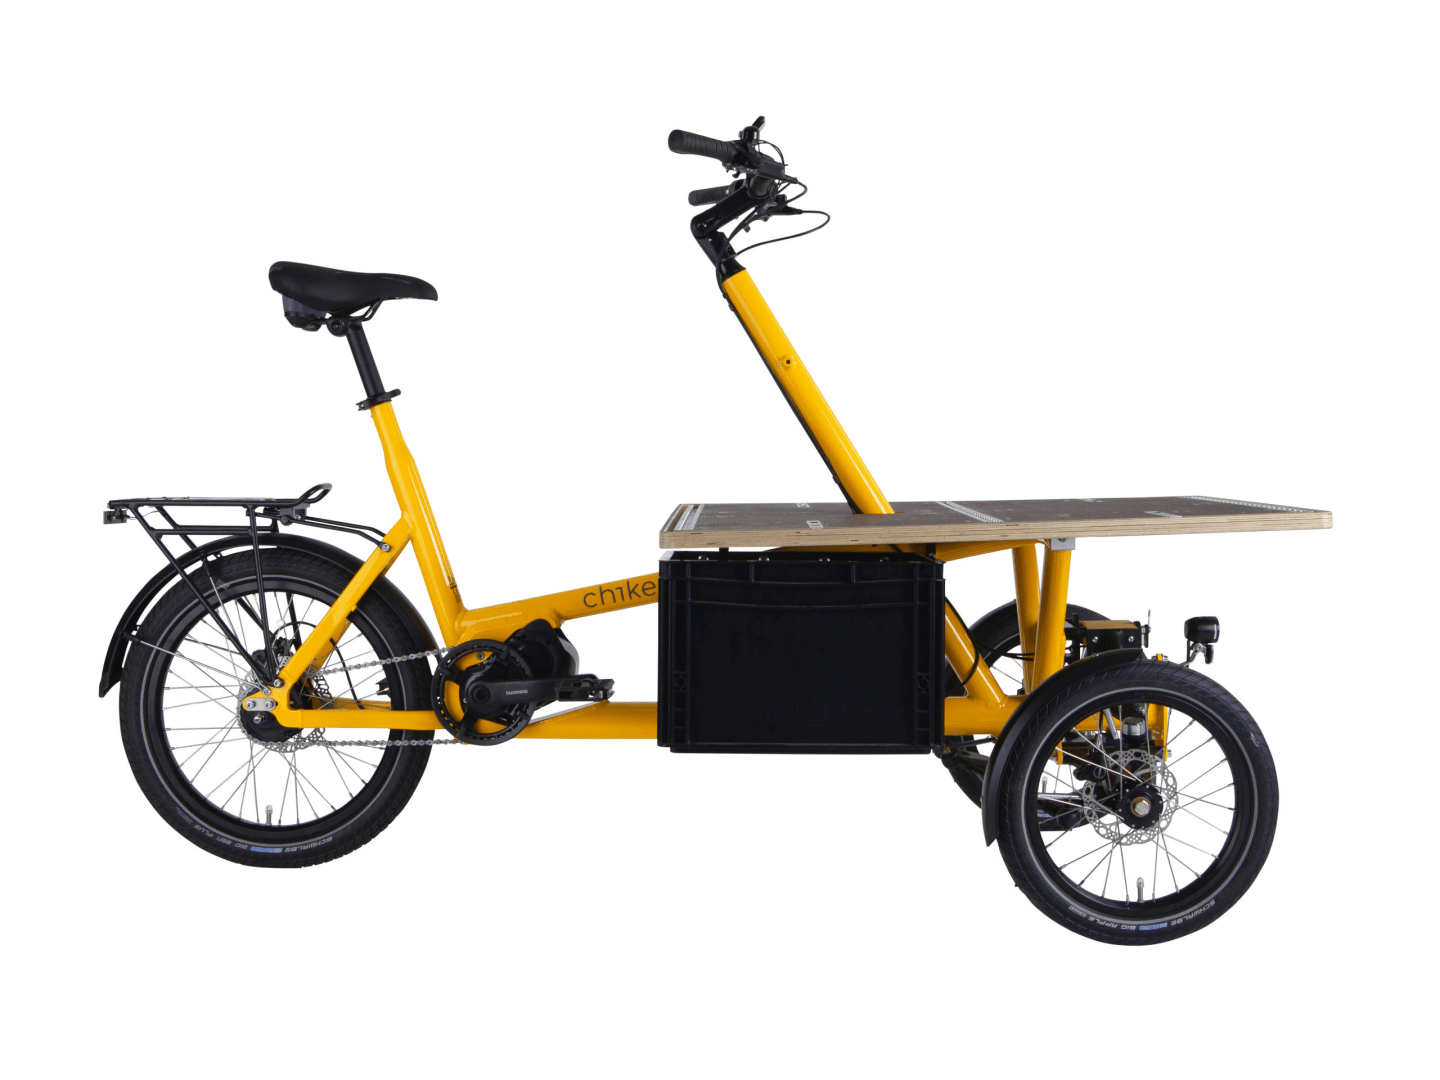 Chike Transportbox without lid